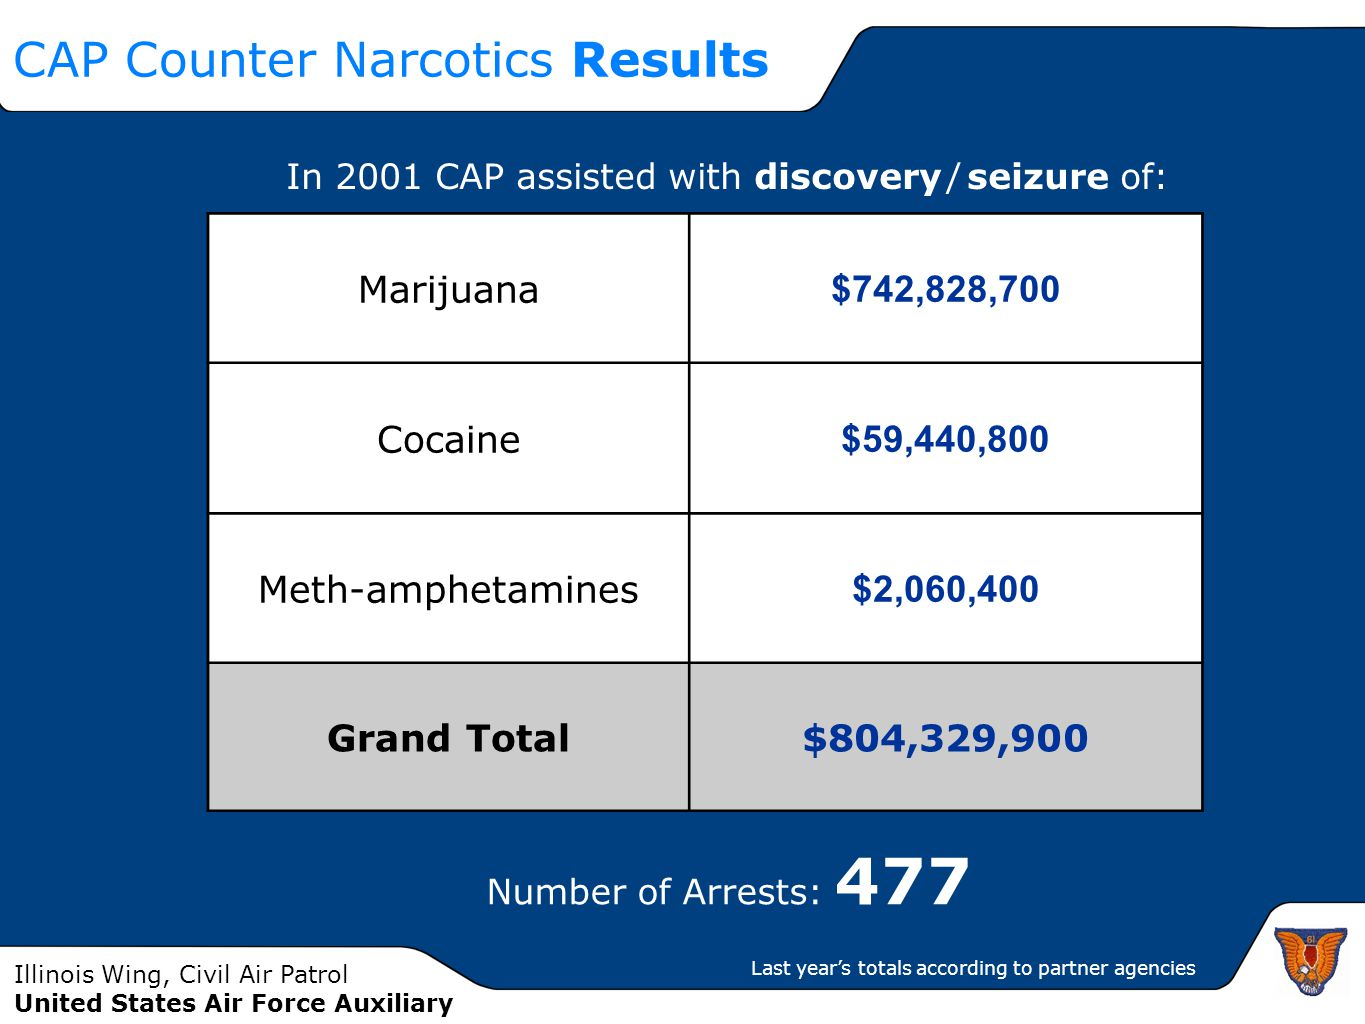 Illinois Wing, Civil Air Patrol United States Air Force Auxiliary CAP Counter Narcotics Results Marijuana $742,828,700 Cocaine $59,440,800 Meth-amphet